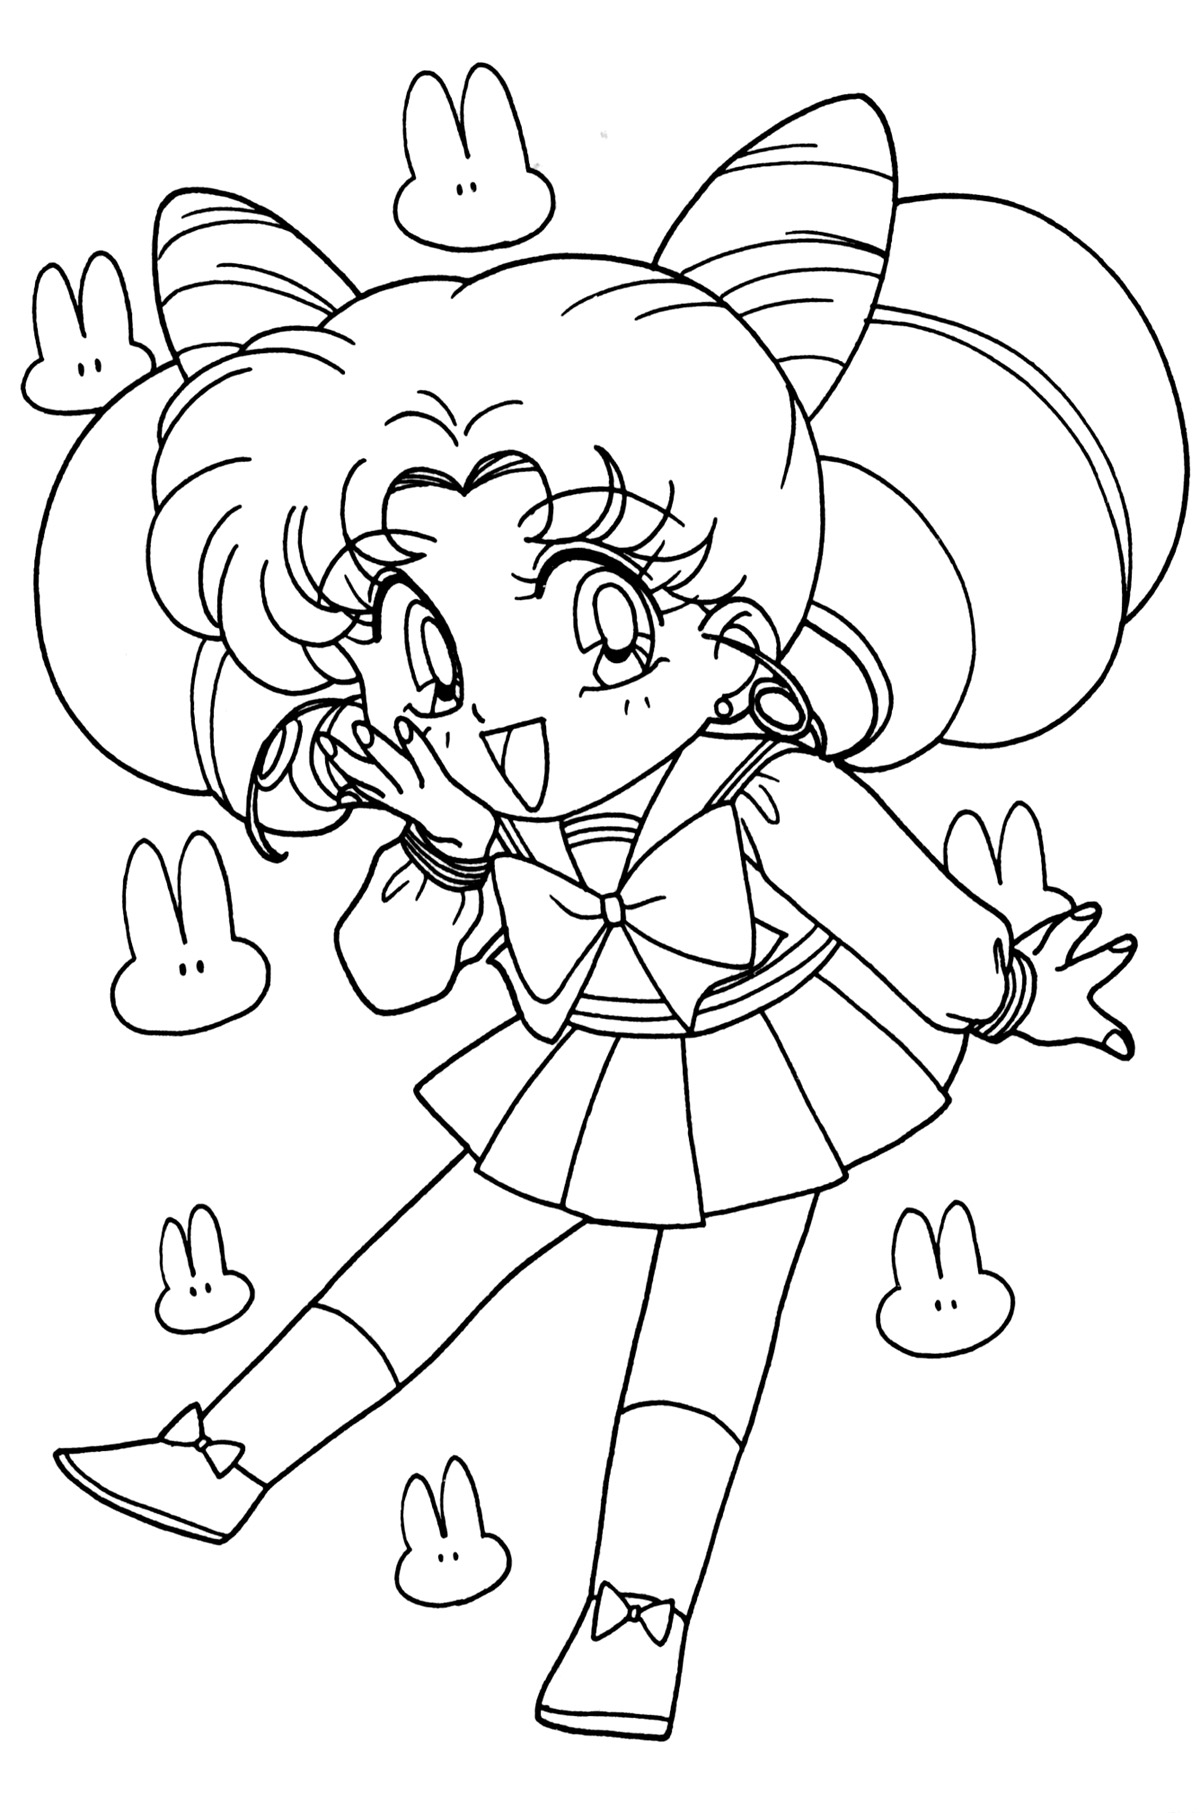 chibi moon coloring pages - photo#6